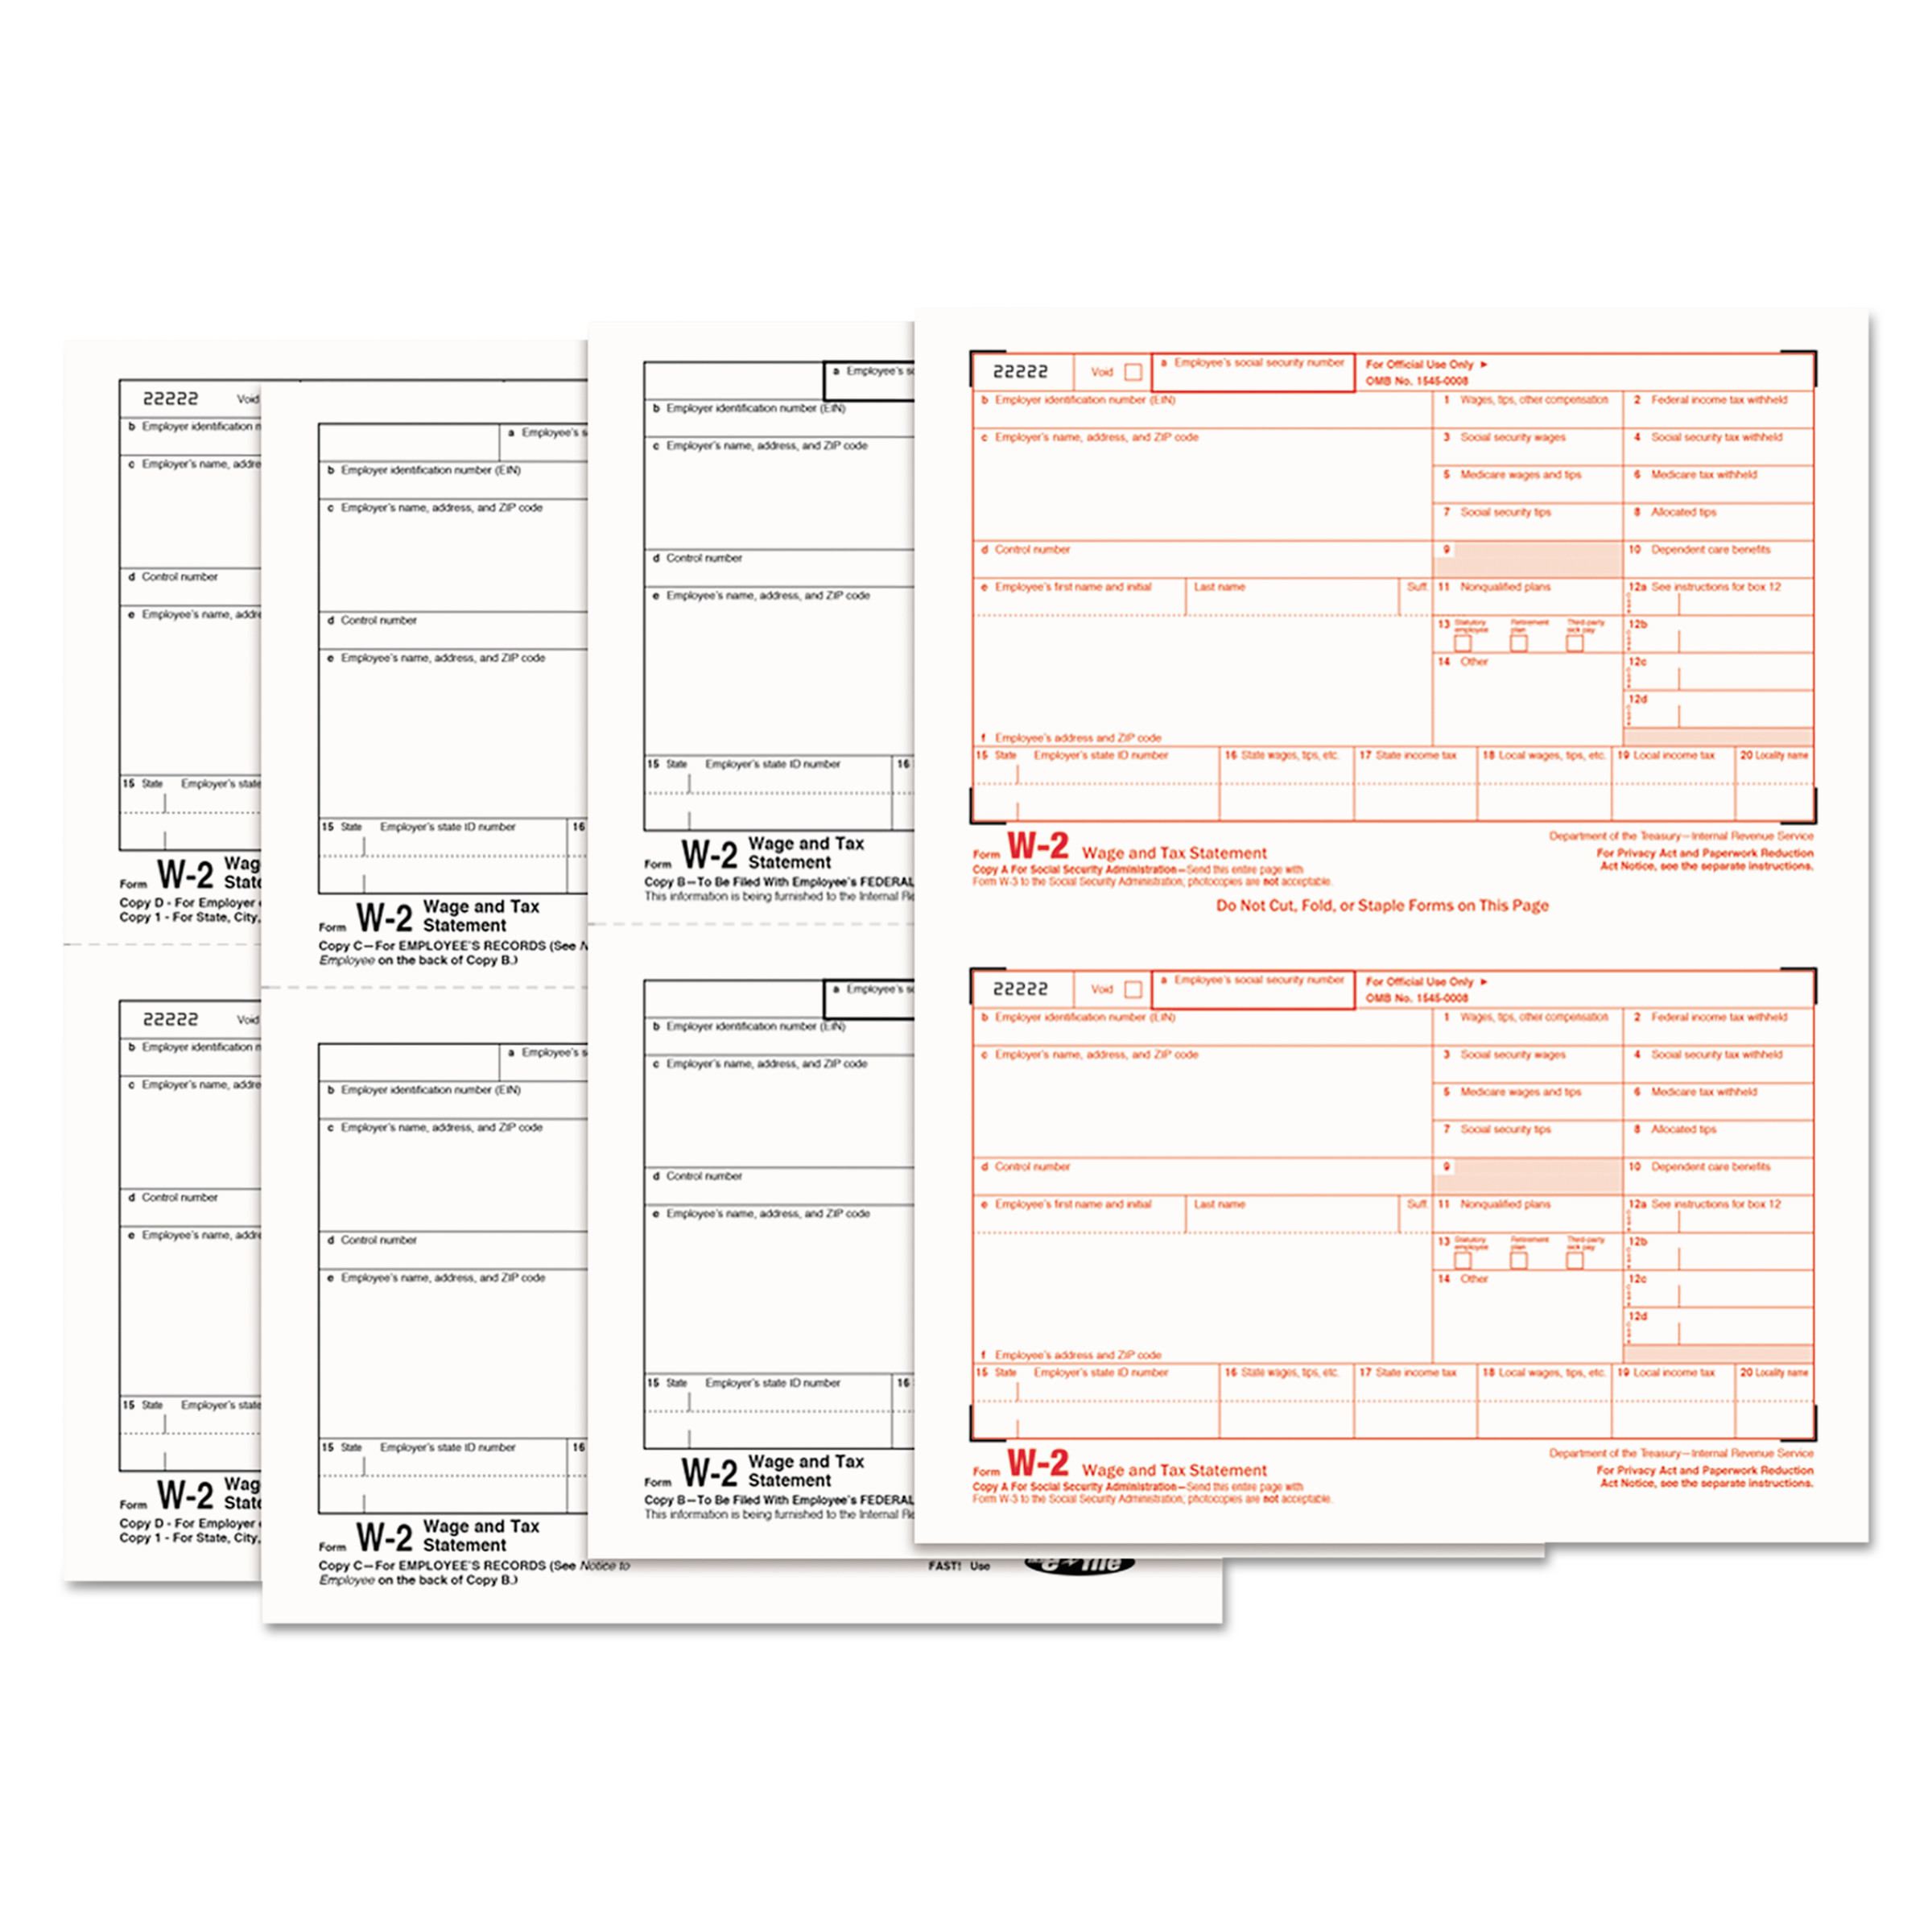 TOPS W-2 Tax Forms, 4-Part, 5 1/2 x 8 1/2, Inkjet/Laser, 50 W-2s ...